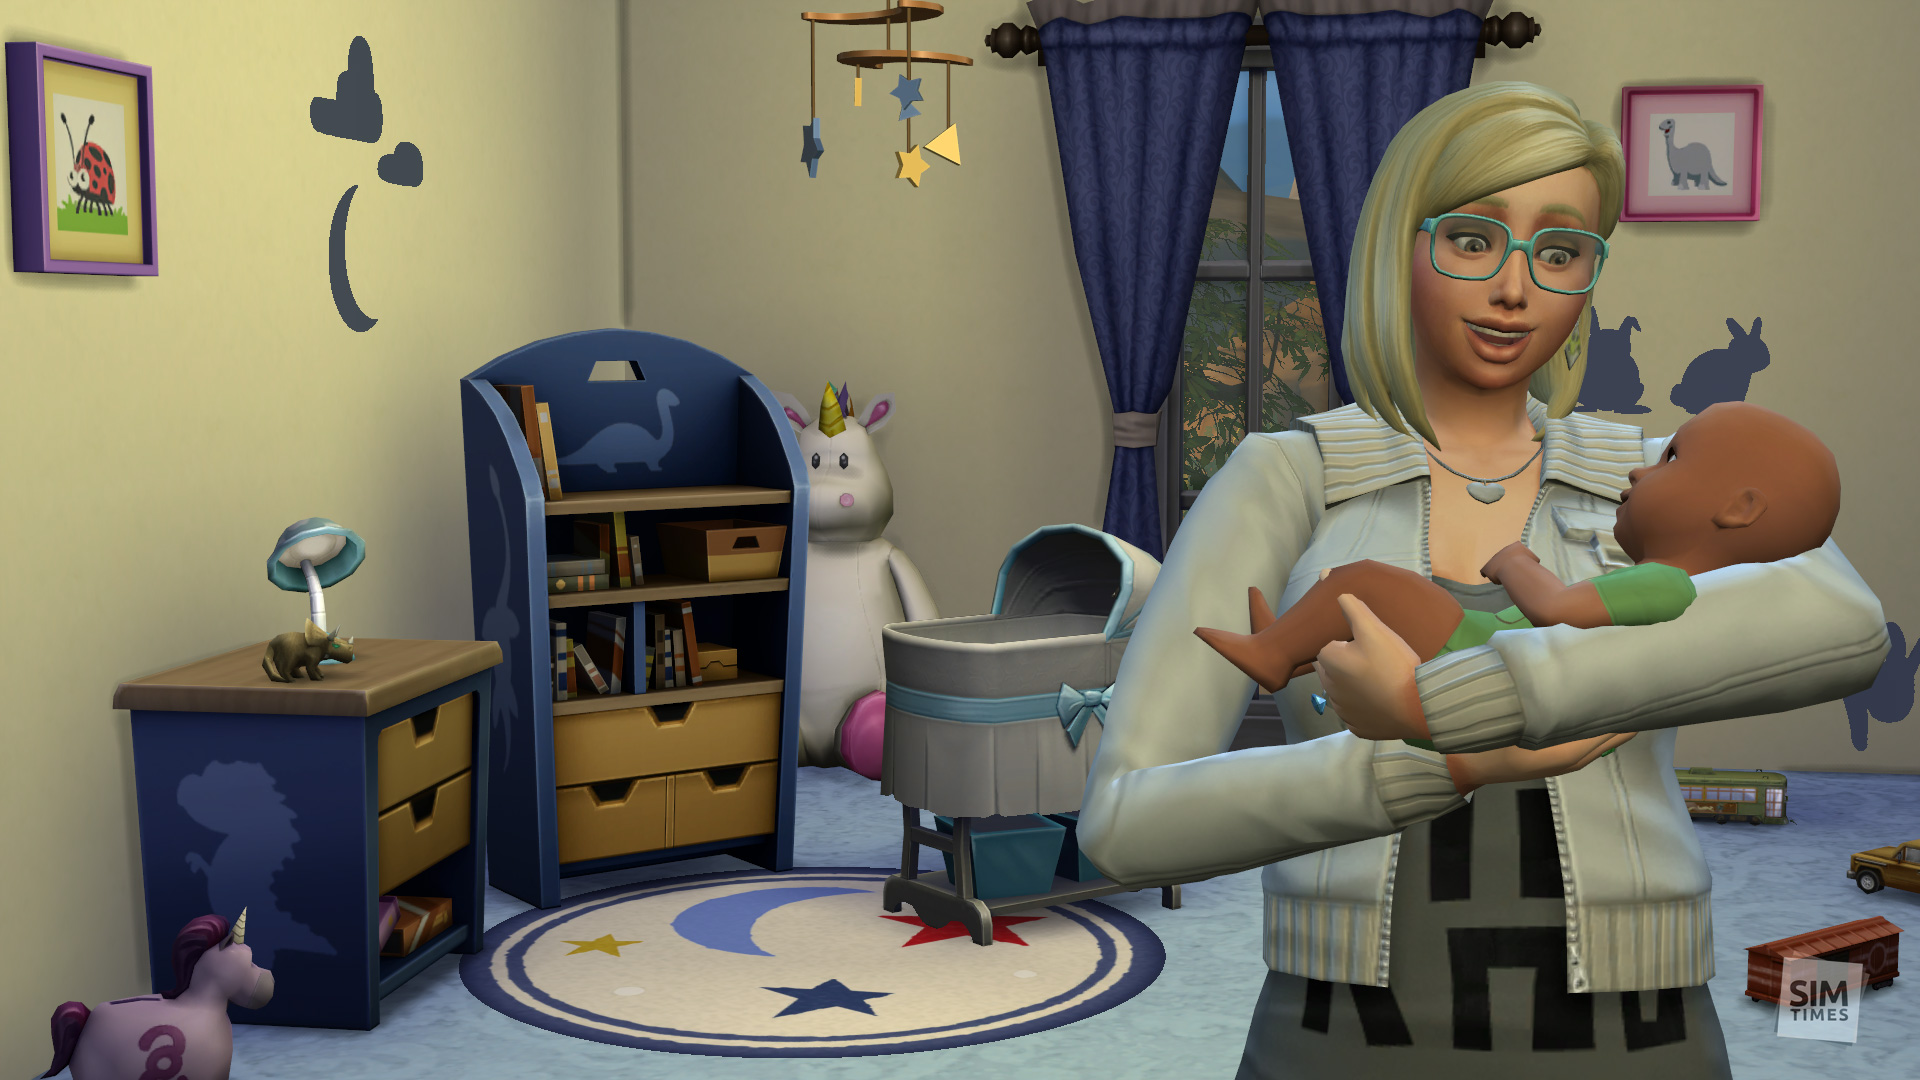 The Sims Resource  Over 1 Million Free Downloads For The Sims 4, 3, 2 And 1